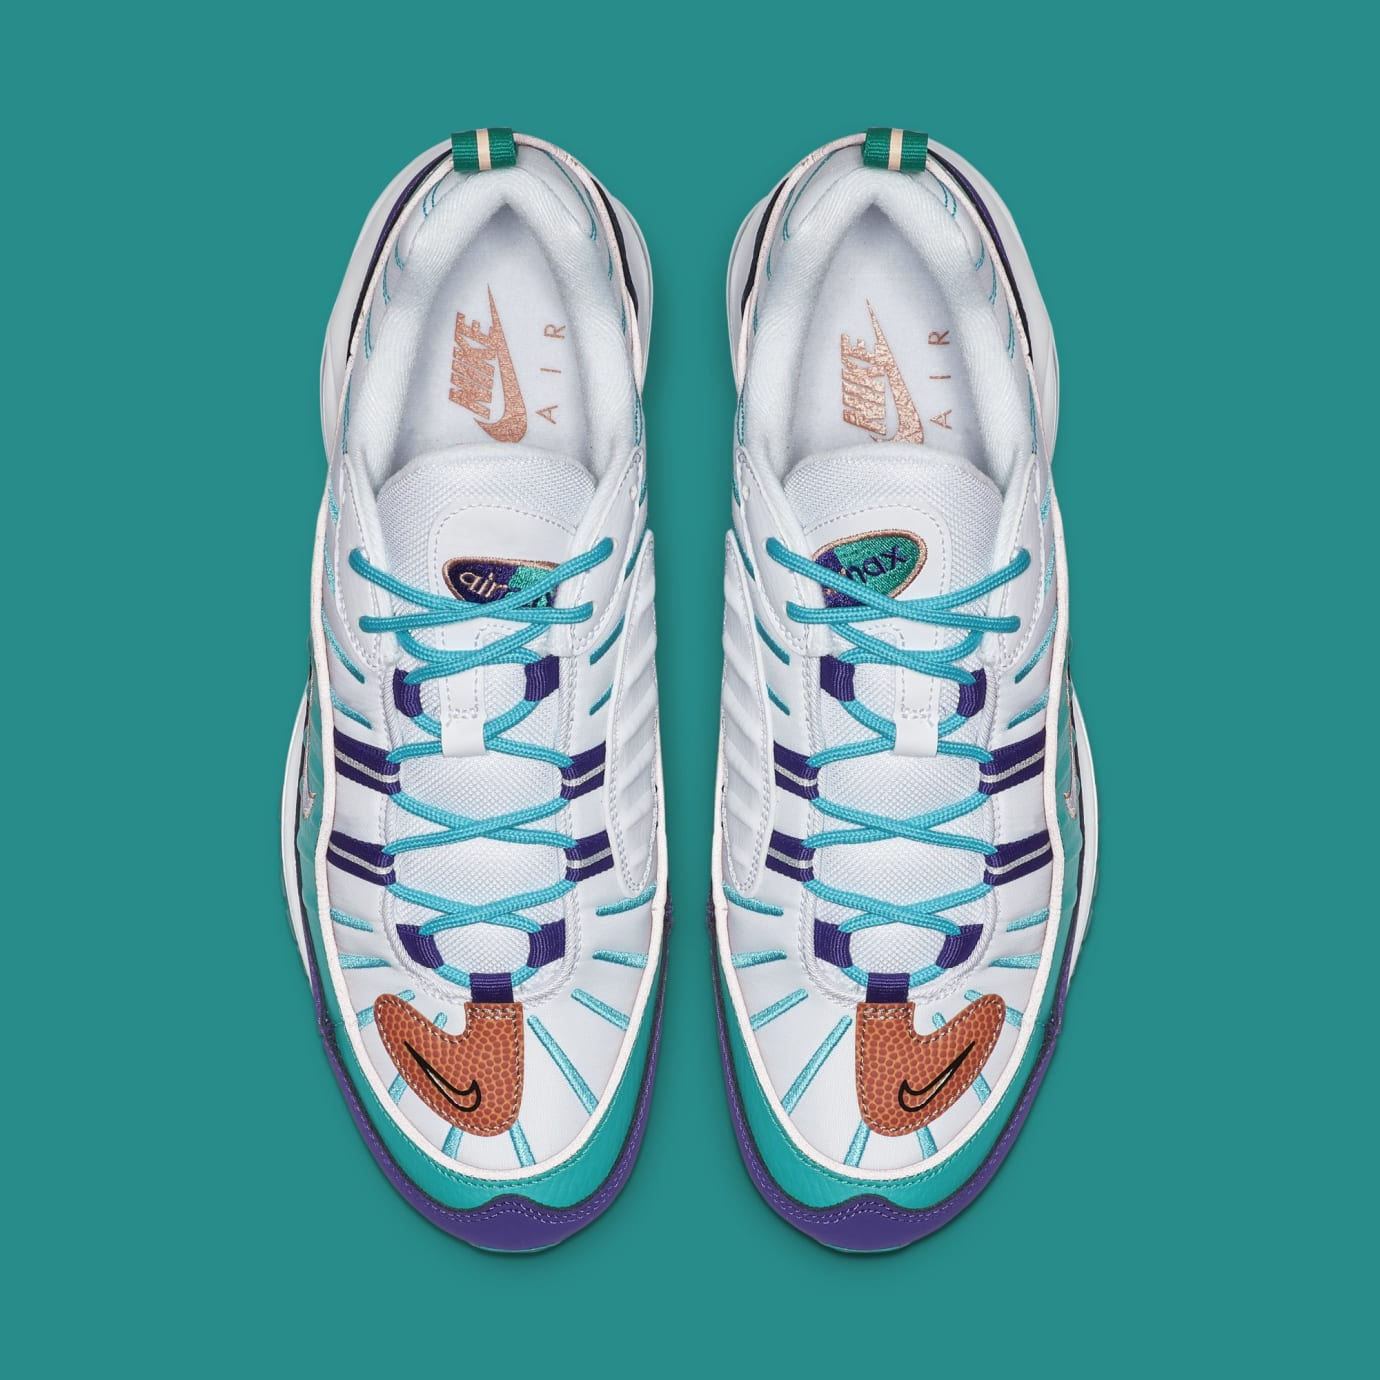 Nike Air Max 98 'Court Purple/Terra Blush-Spirit Teal' 640744-500 (Top)